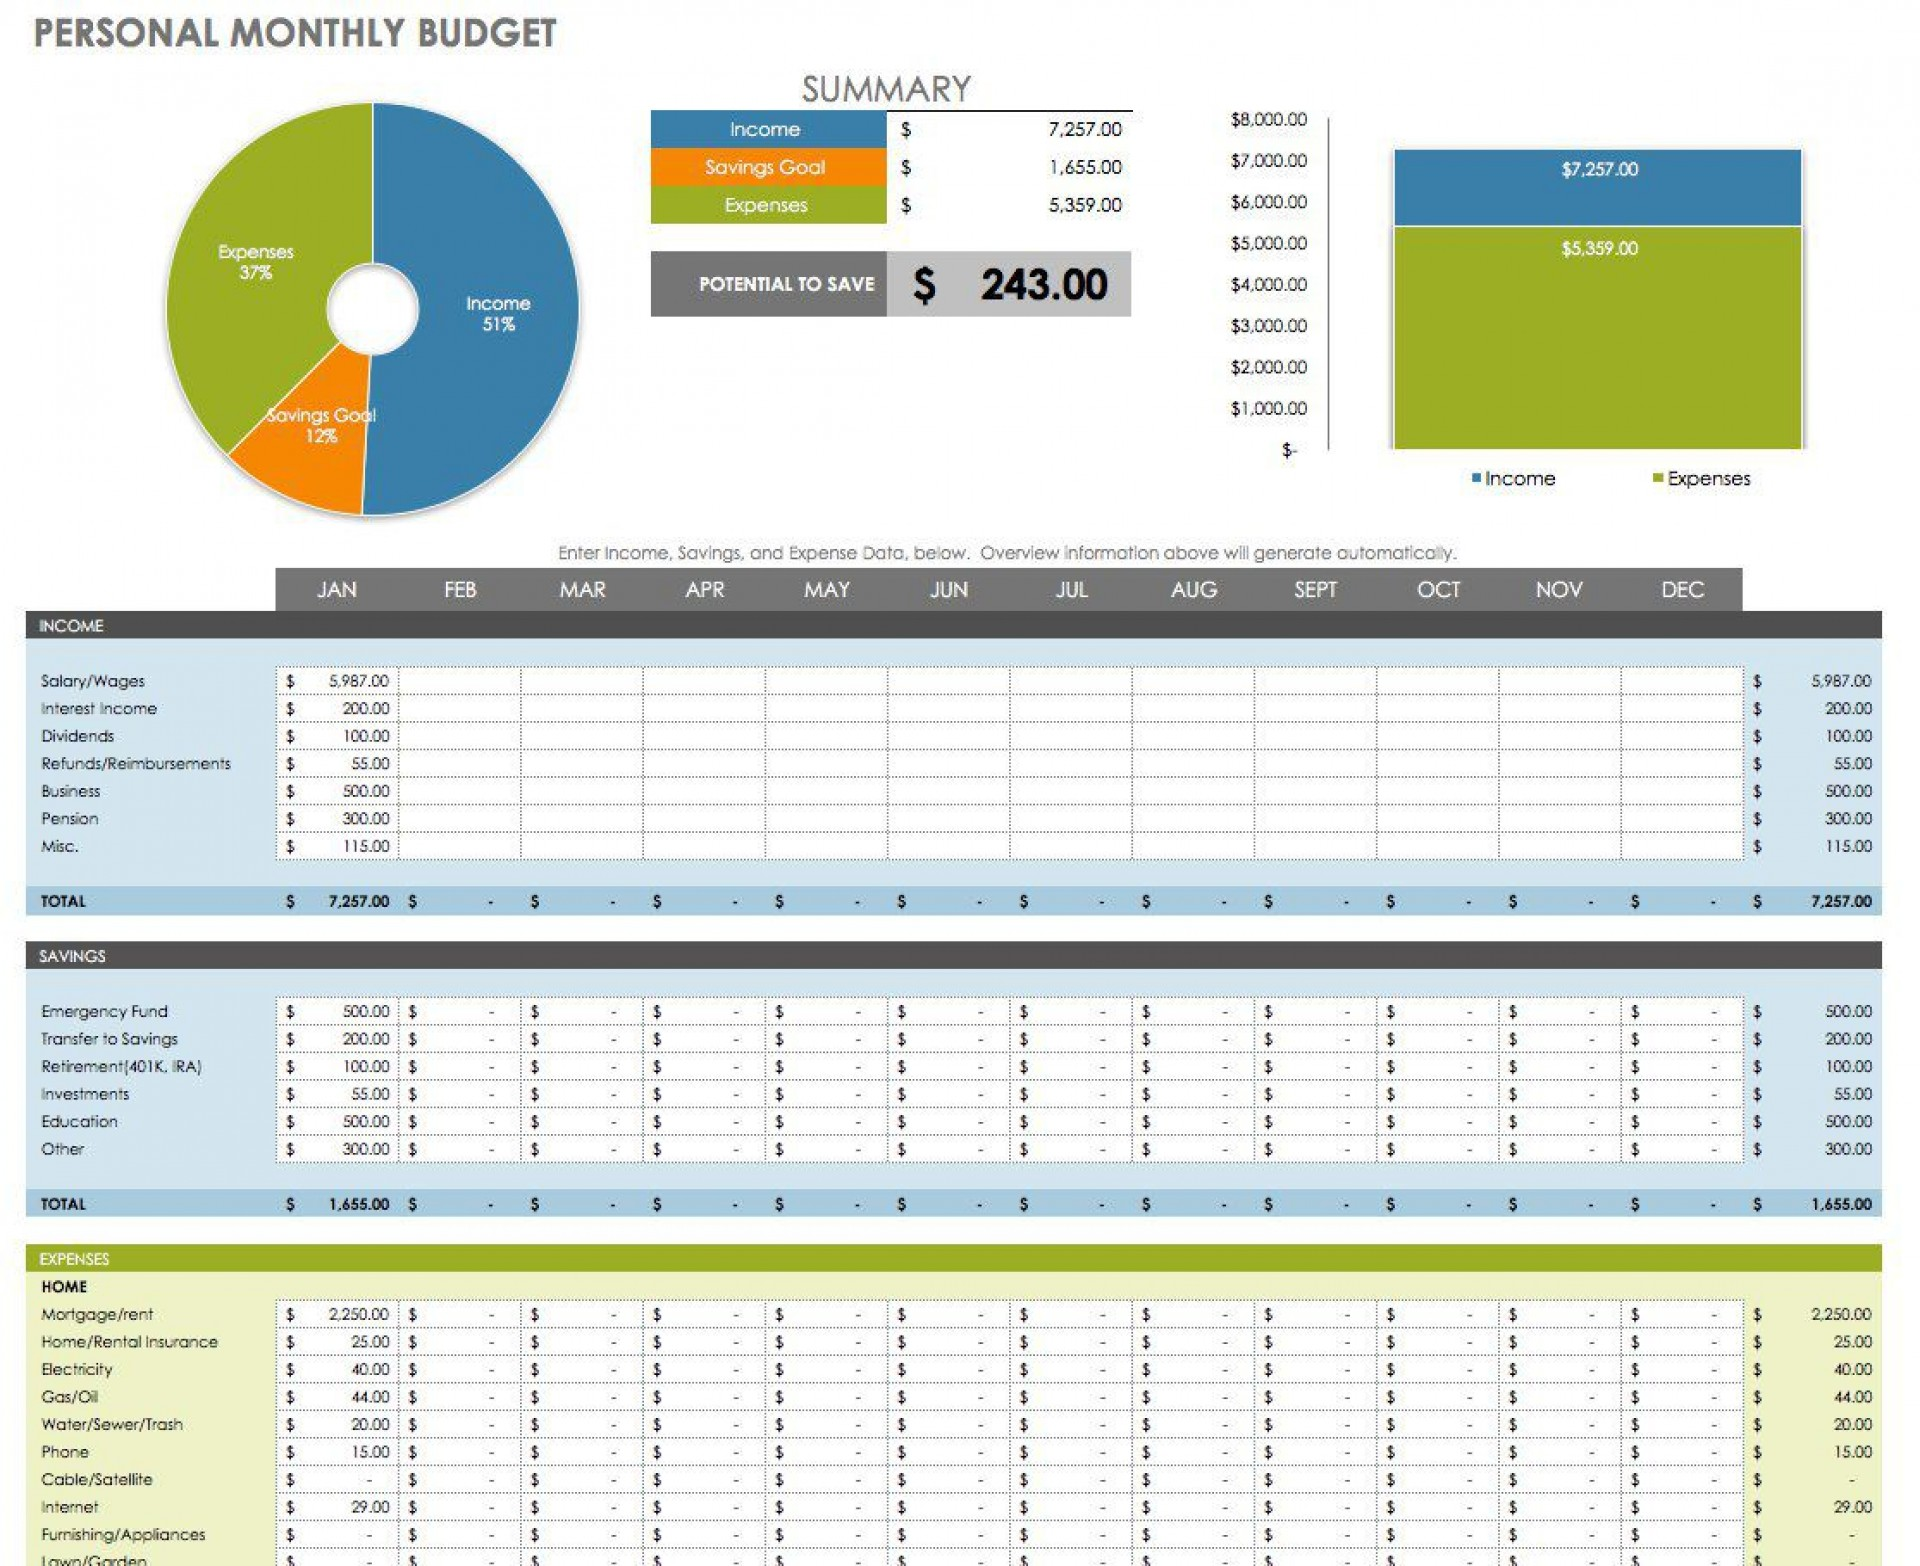 008 Fascinating Monthly Budget Spreadsheet Template Free Example  Personal1920